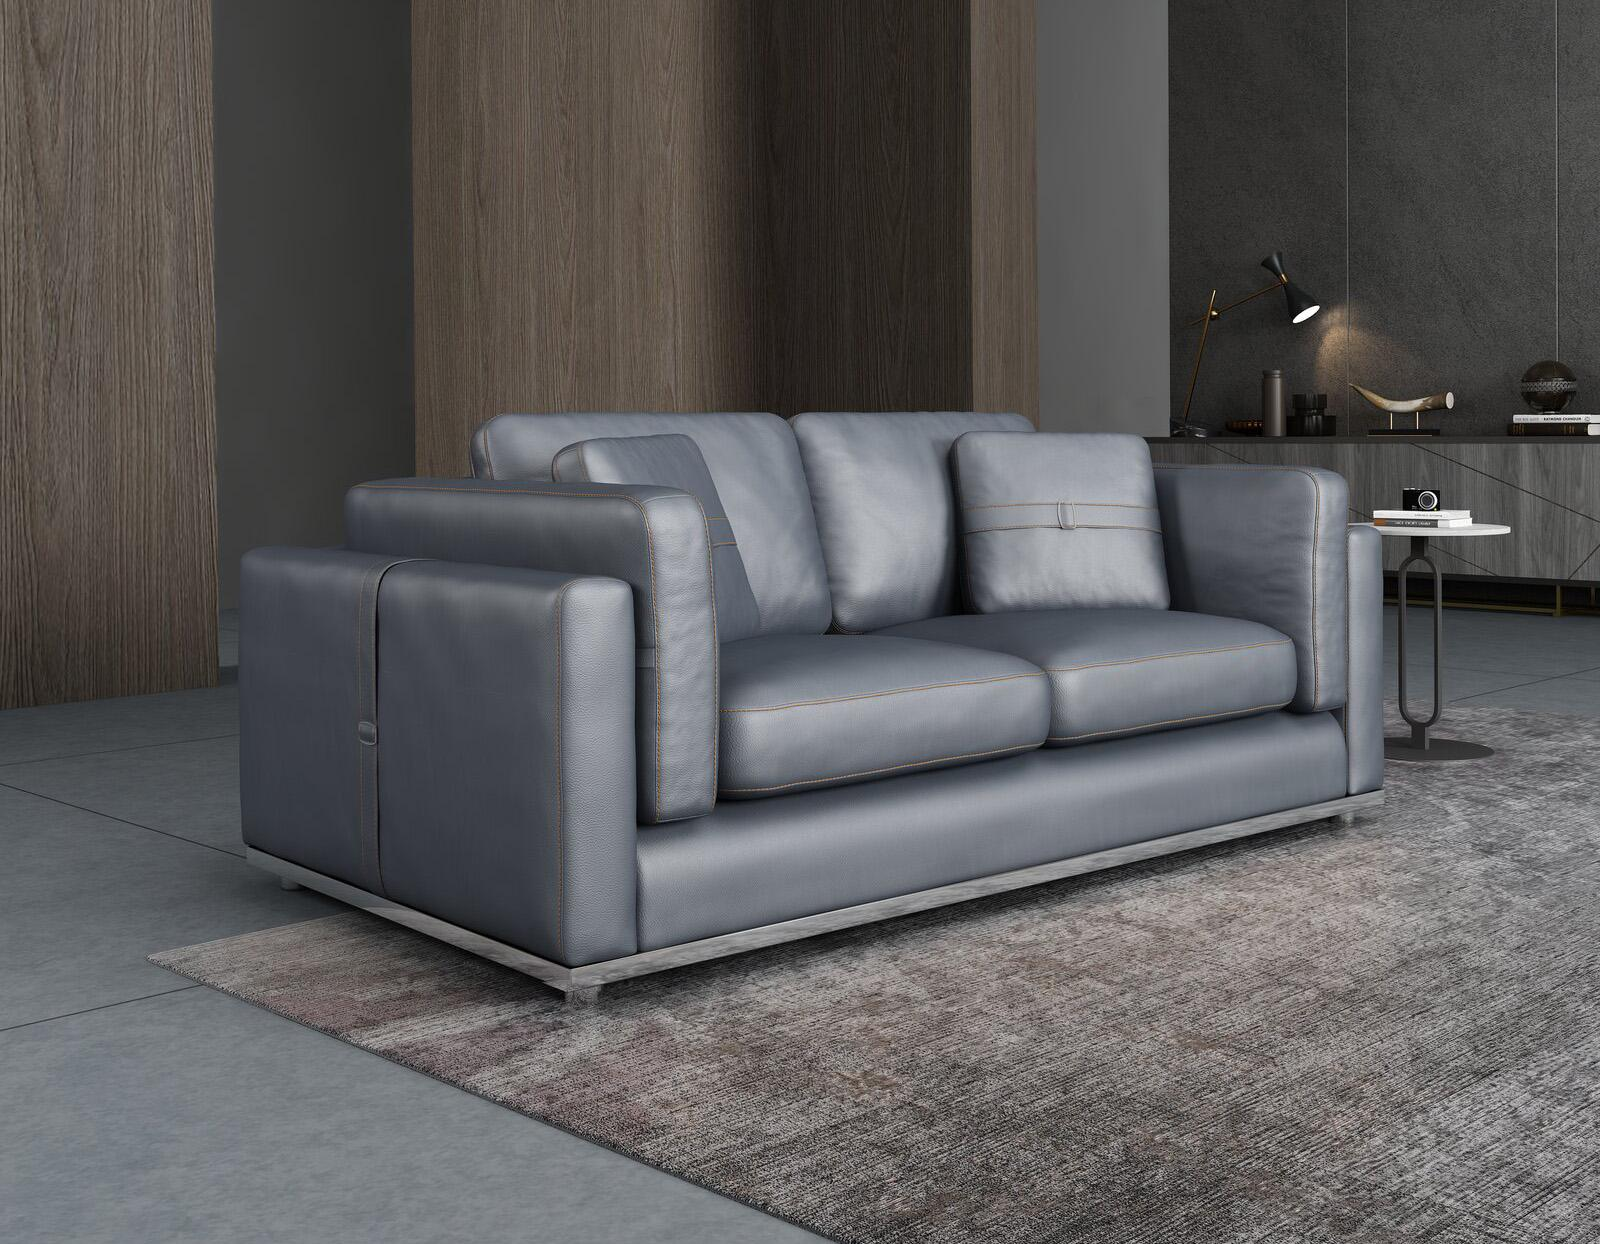 Contemporary, Modern Gray, Smoke Leather and Wood, Genuine leather, Solid Hardwood Loveseat 1 pcs PICASSO by European Furniture